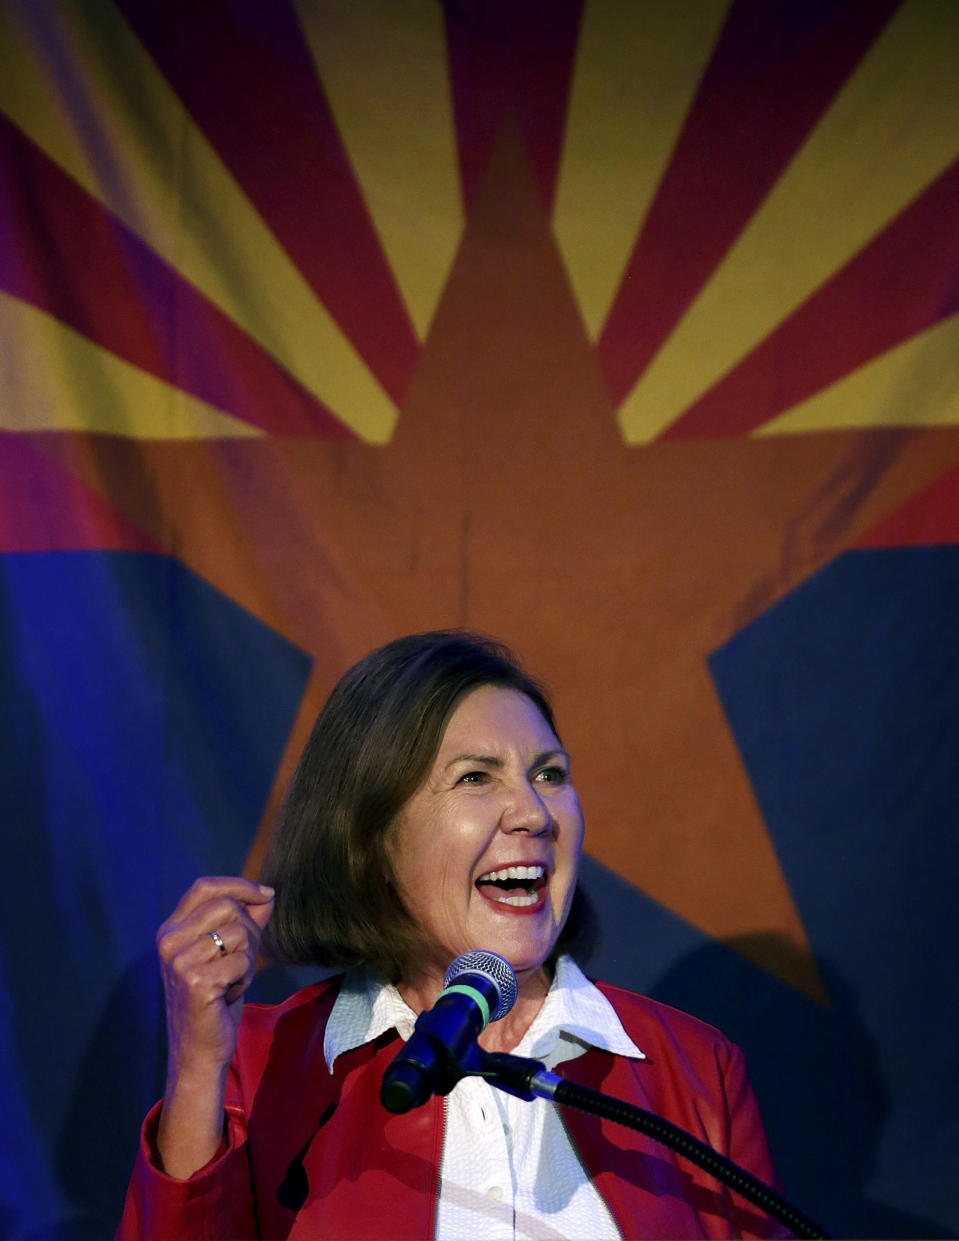 FILE - In this Nov. 6, 2018 file photo, Democrat Ann Kirkpatrick, candidate for Congressional District 2, gives a victory speech during the Pima County Democratic Party Election Night watch party in Tucson, Ariz. Kirkpatrick, a five-term Arizona Democrat, announced Friday, March 12, 2021, she won't run for reelection in 2022 (Mike Christy/Arizona Daily Star via AP, File)